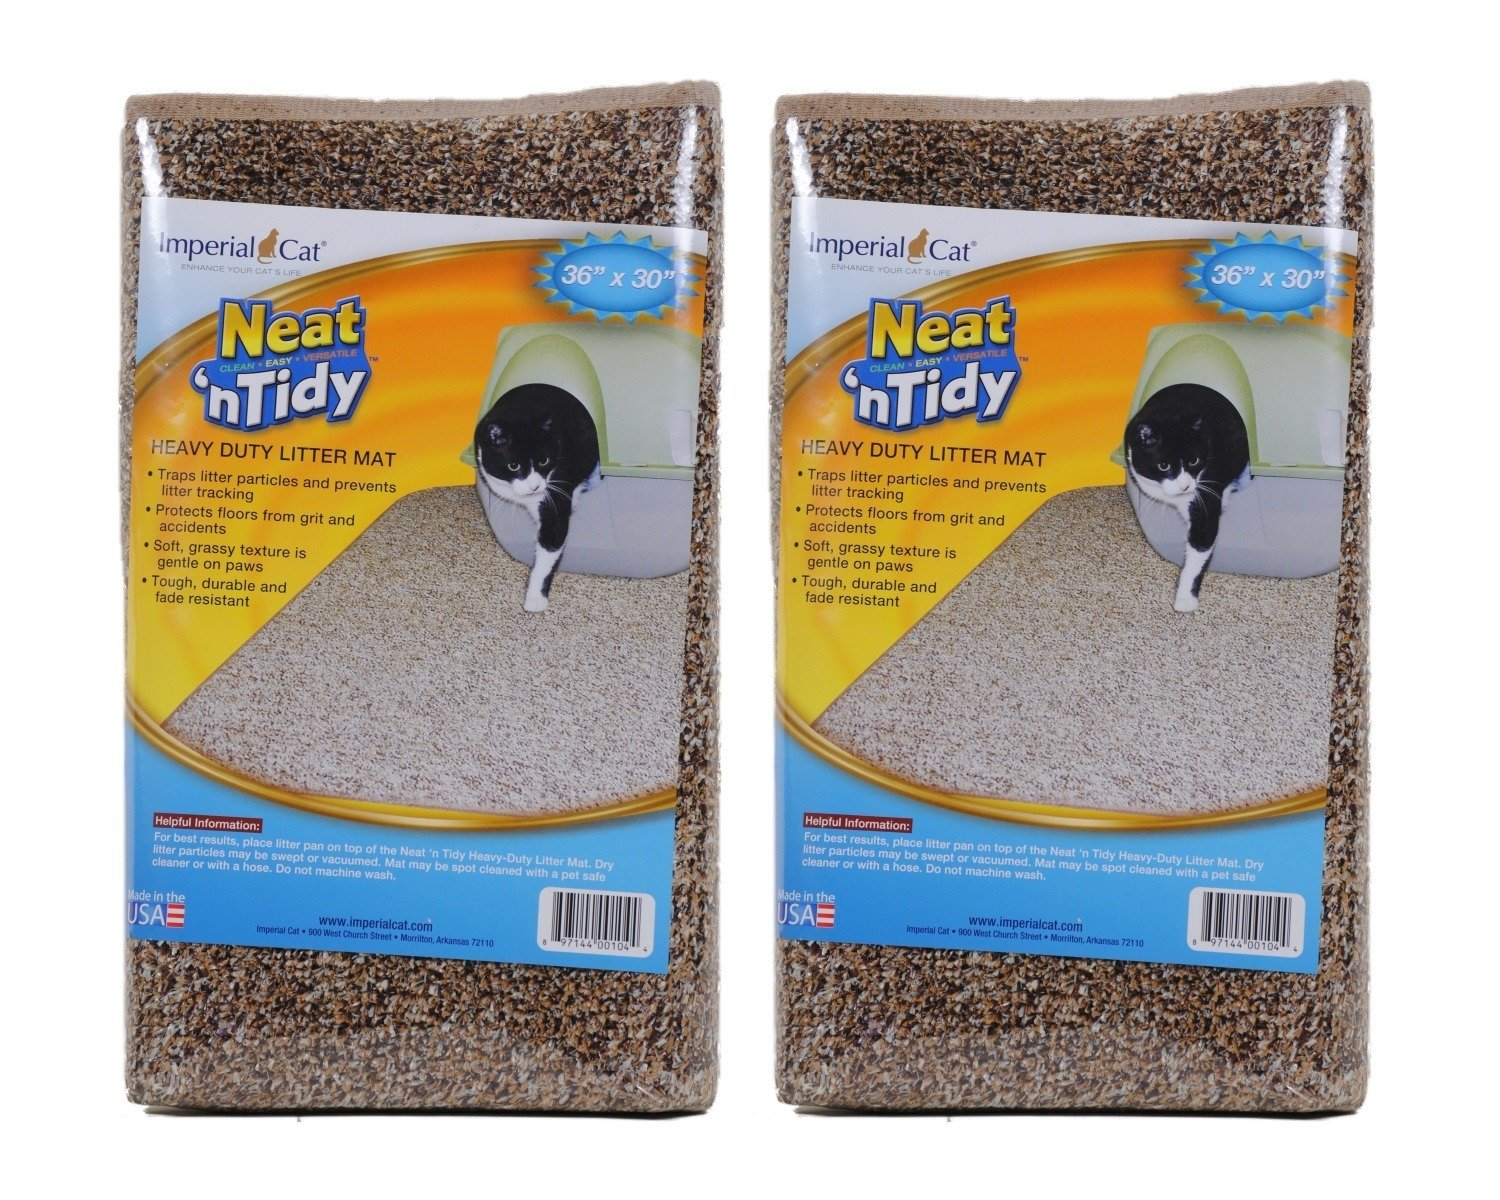 Neat N Tidy Litter Mat by Imperial Cat, Brown (Pack of 2)